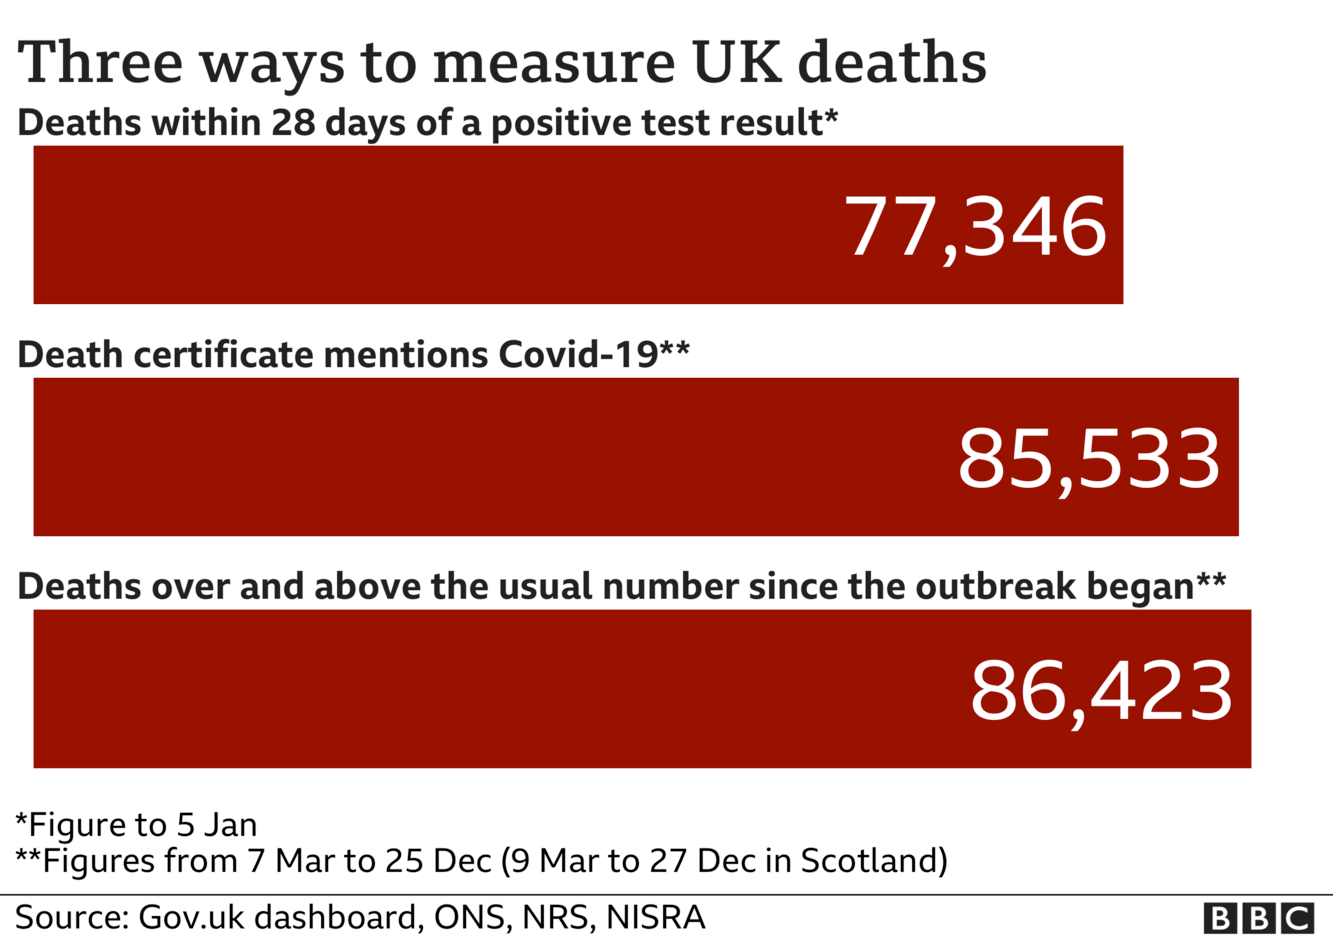 Chart showing three different totals for coronavirus deaths - the government measures all deaths within 28 days of a positive test, that total is 77,346 The ONS includes all deaths where coronavirus was mentioned on the death certificate, that total is 85,533 and the final total includes all deaths over and above the average for the time of year and that total is now 86,423. Updated 6 Jan